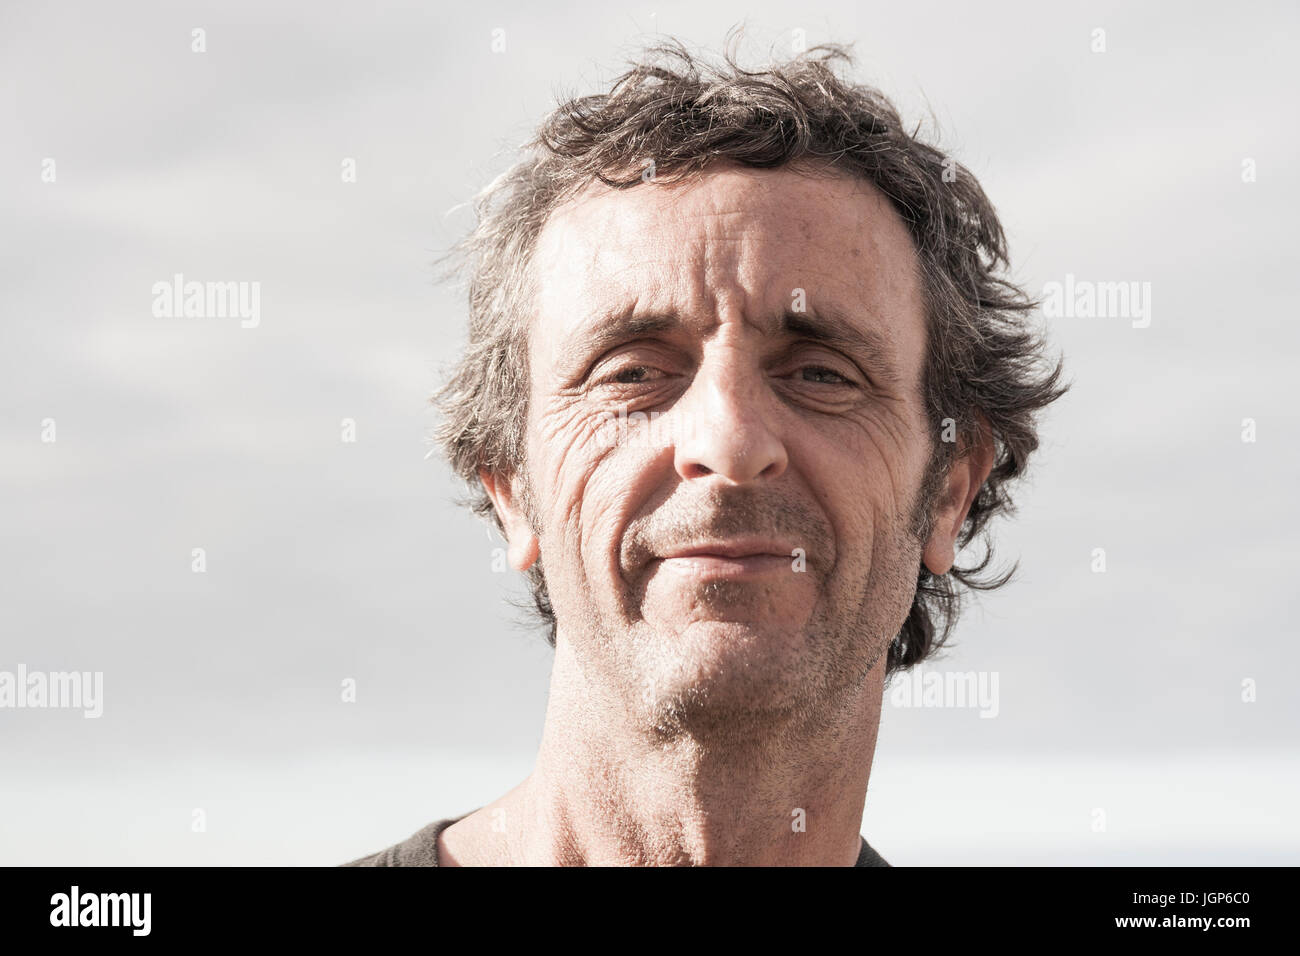 Smiling, unshaven man in his fifties looking at camera - Stock Image